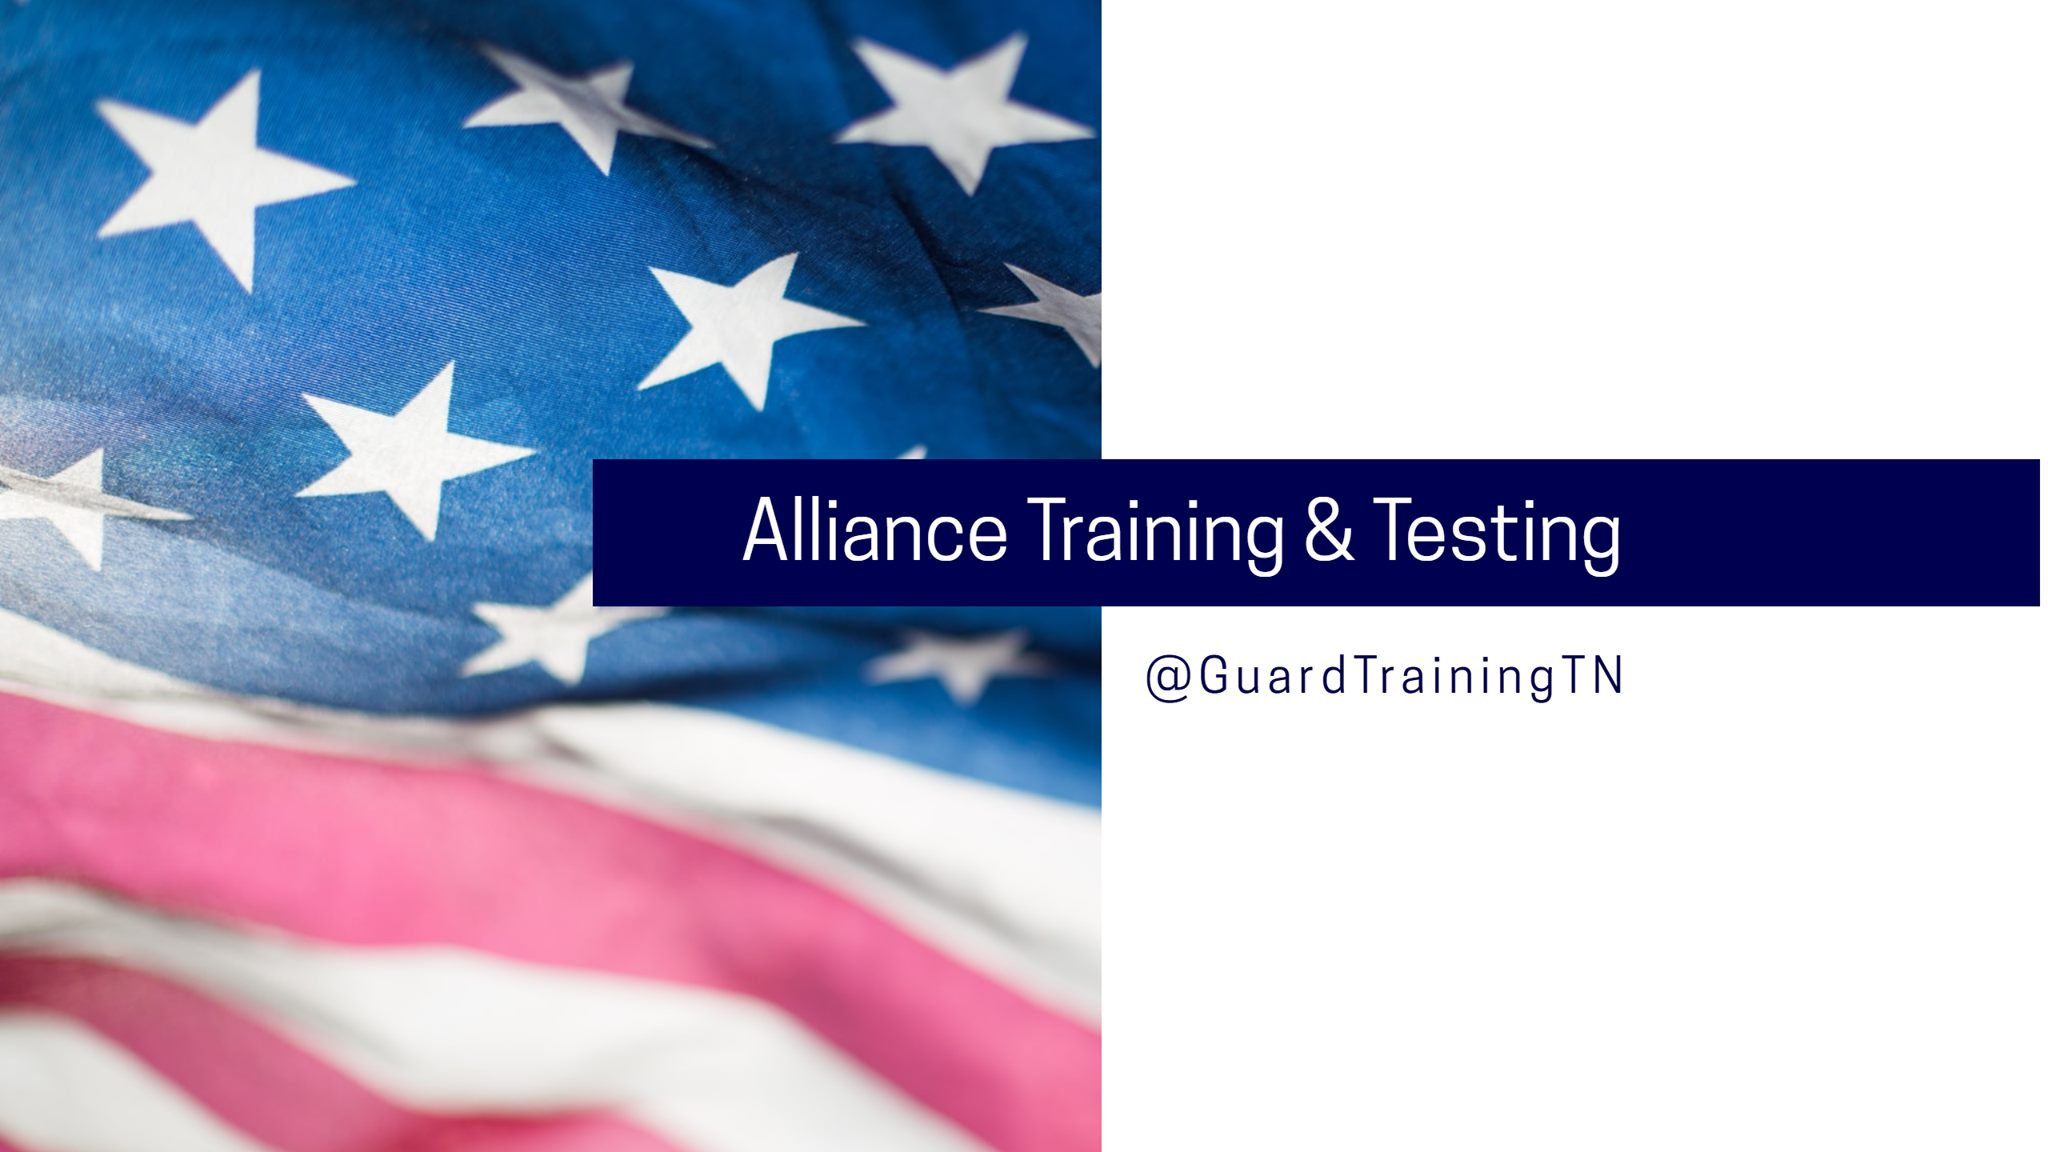 Alliance Training and Testing